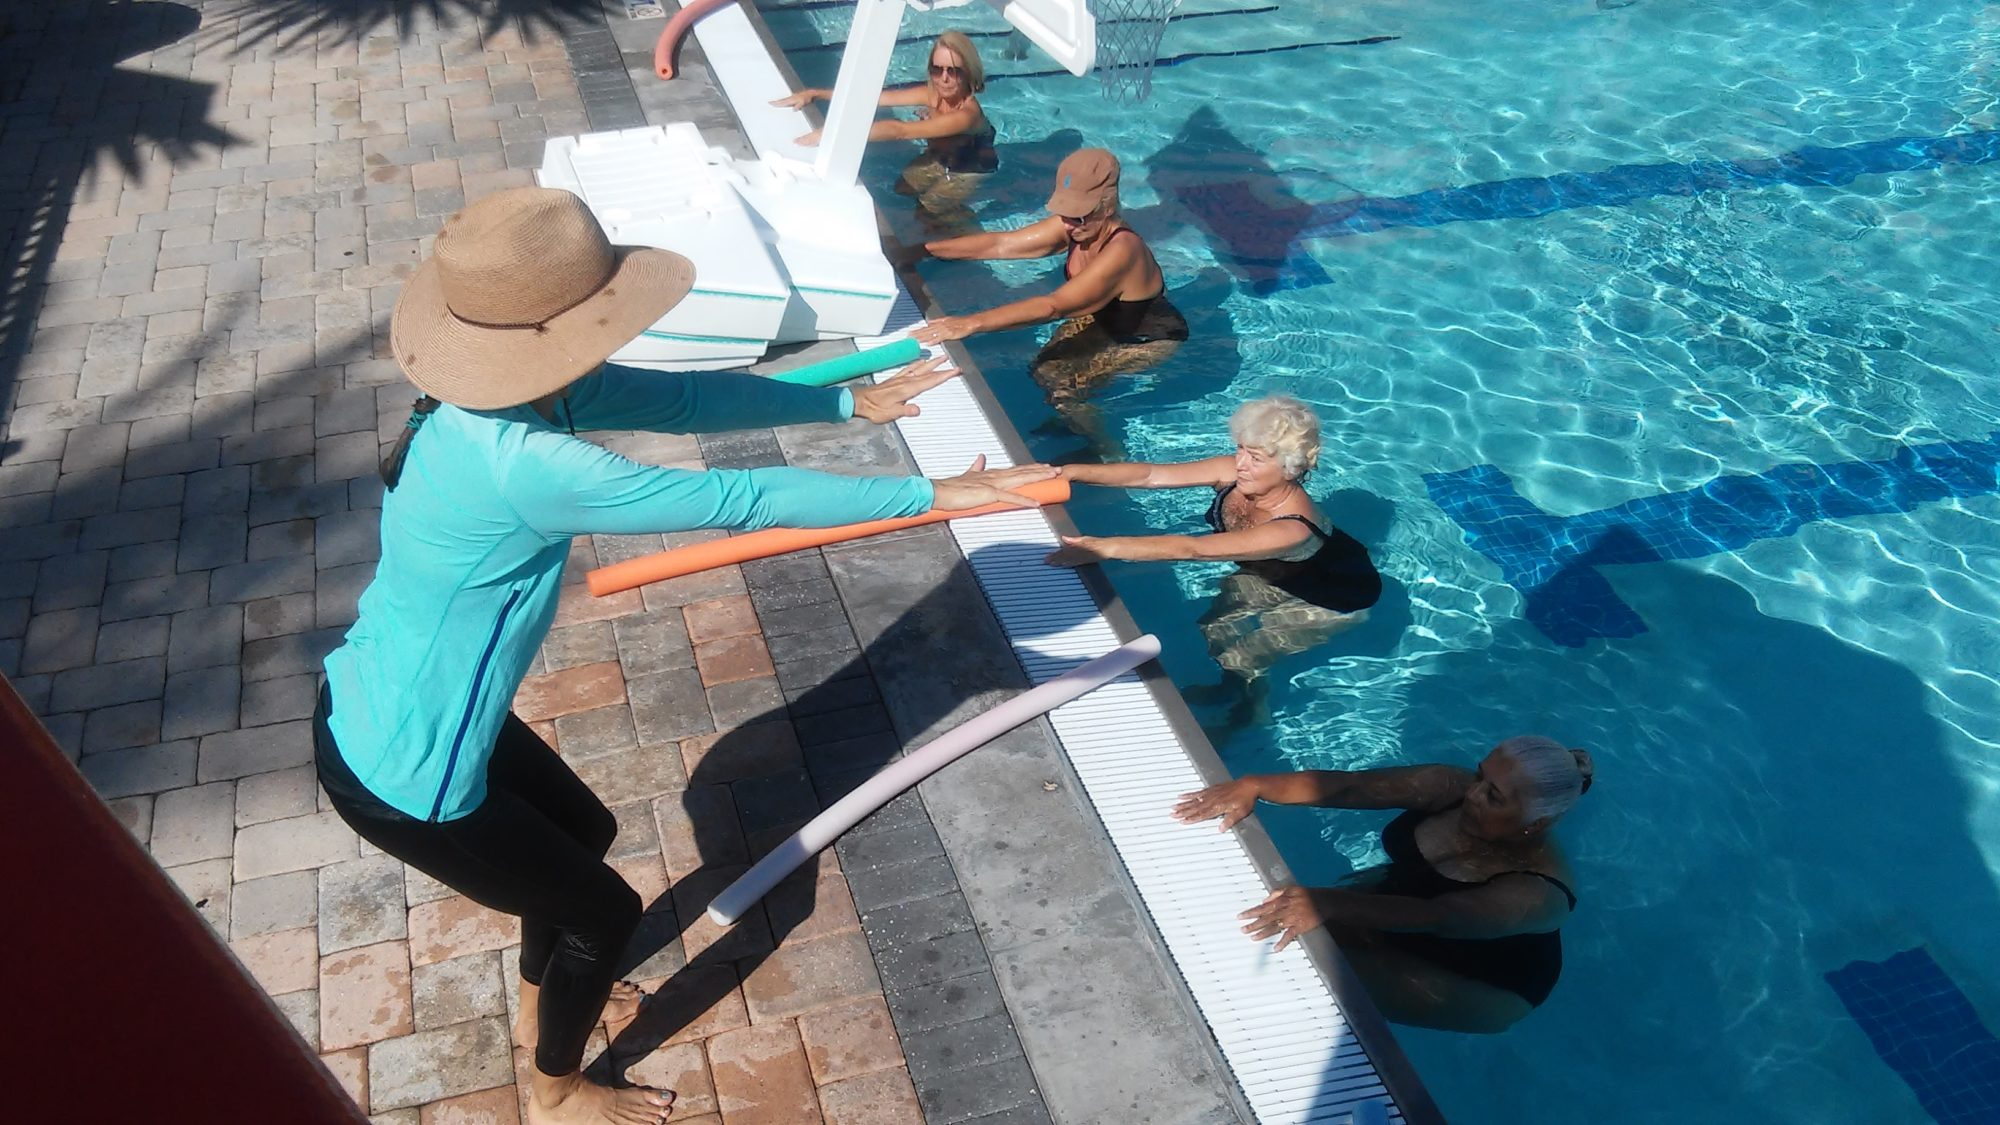 christa fairbrother teaching from the pool deck